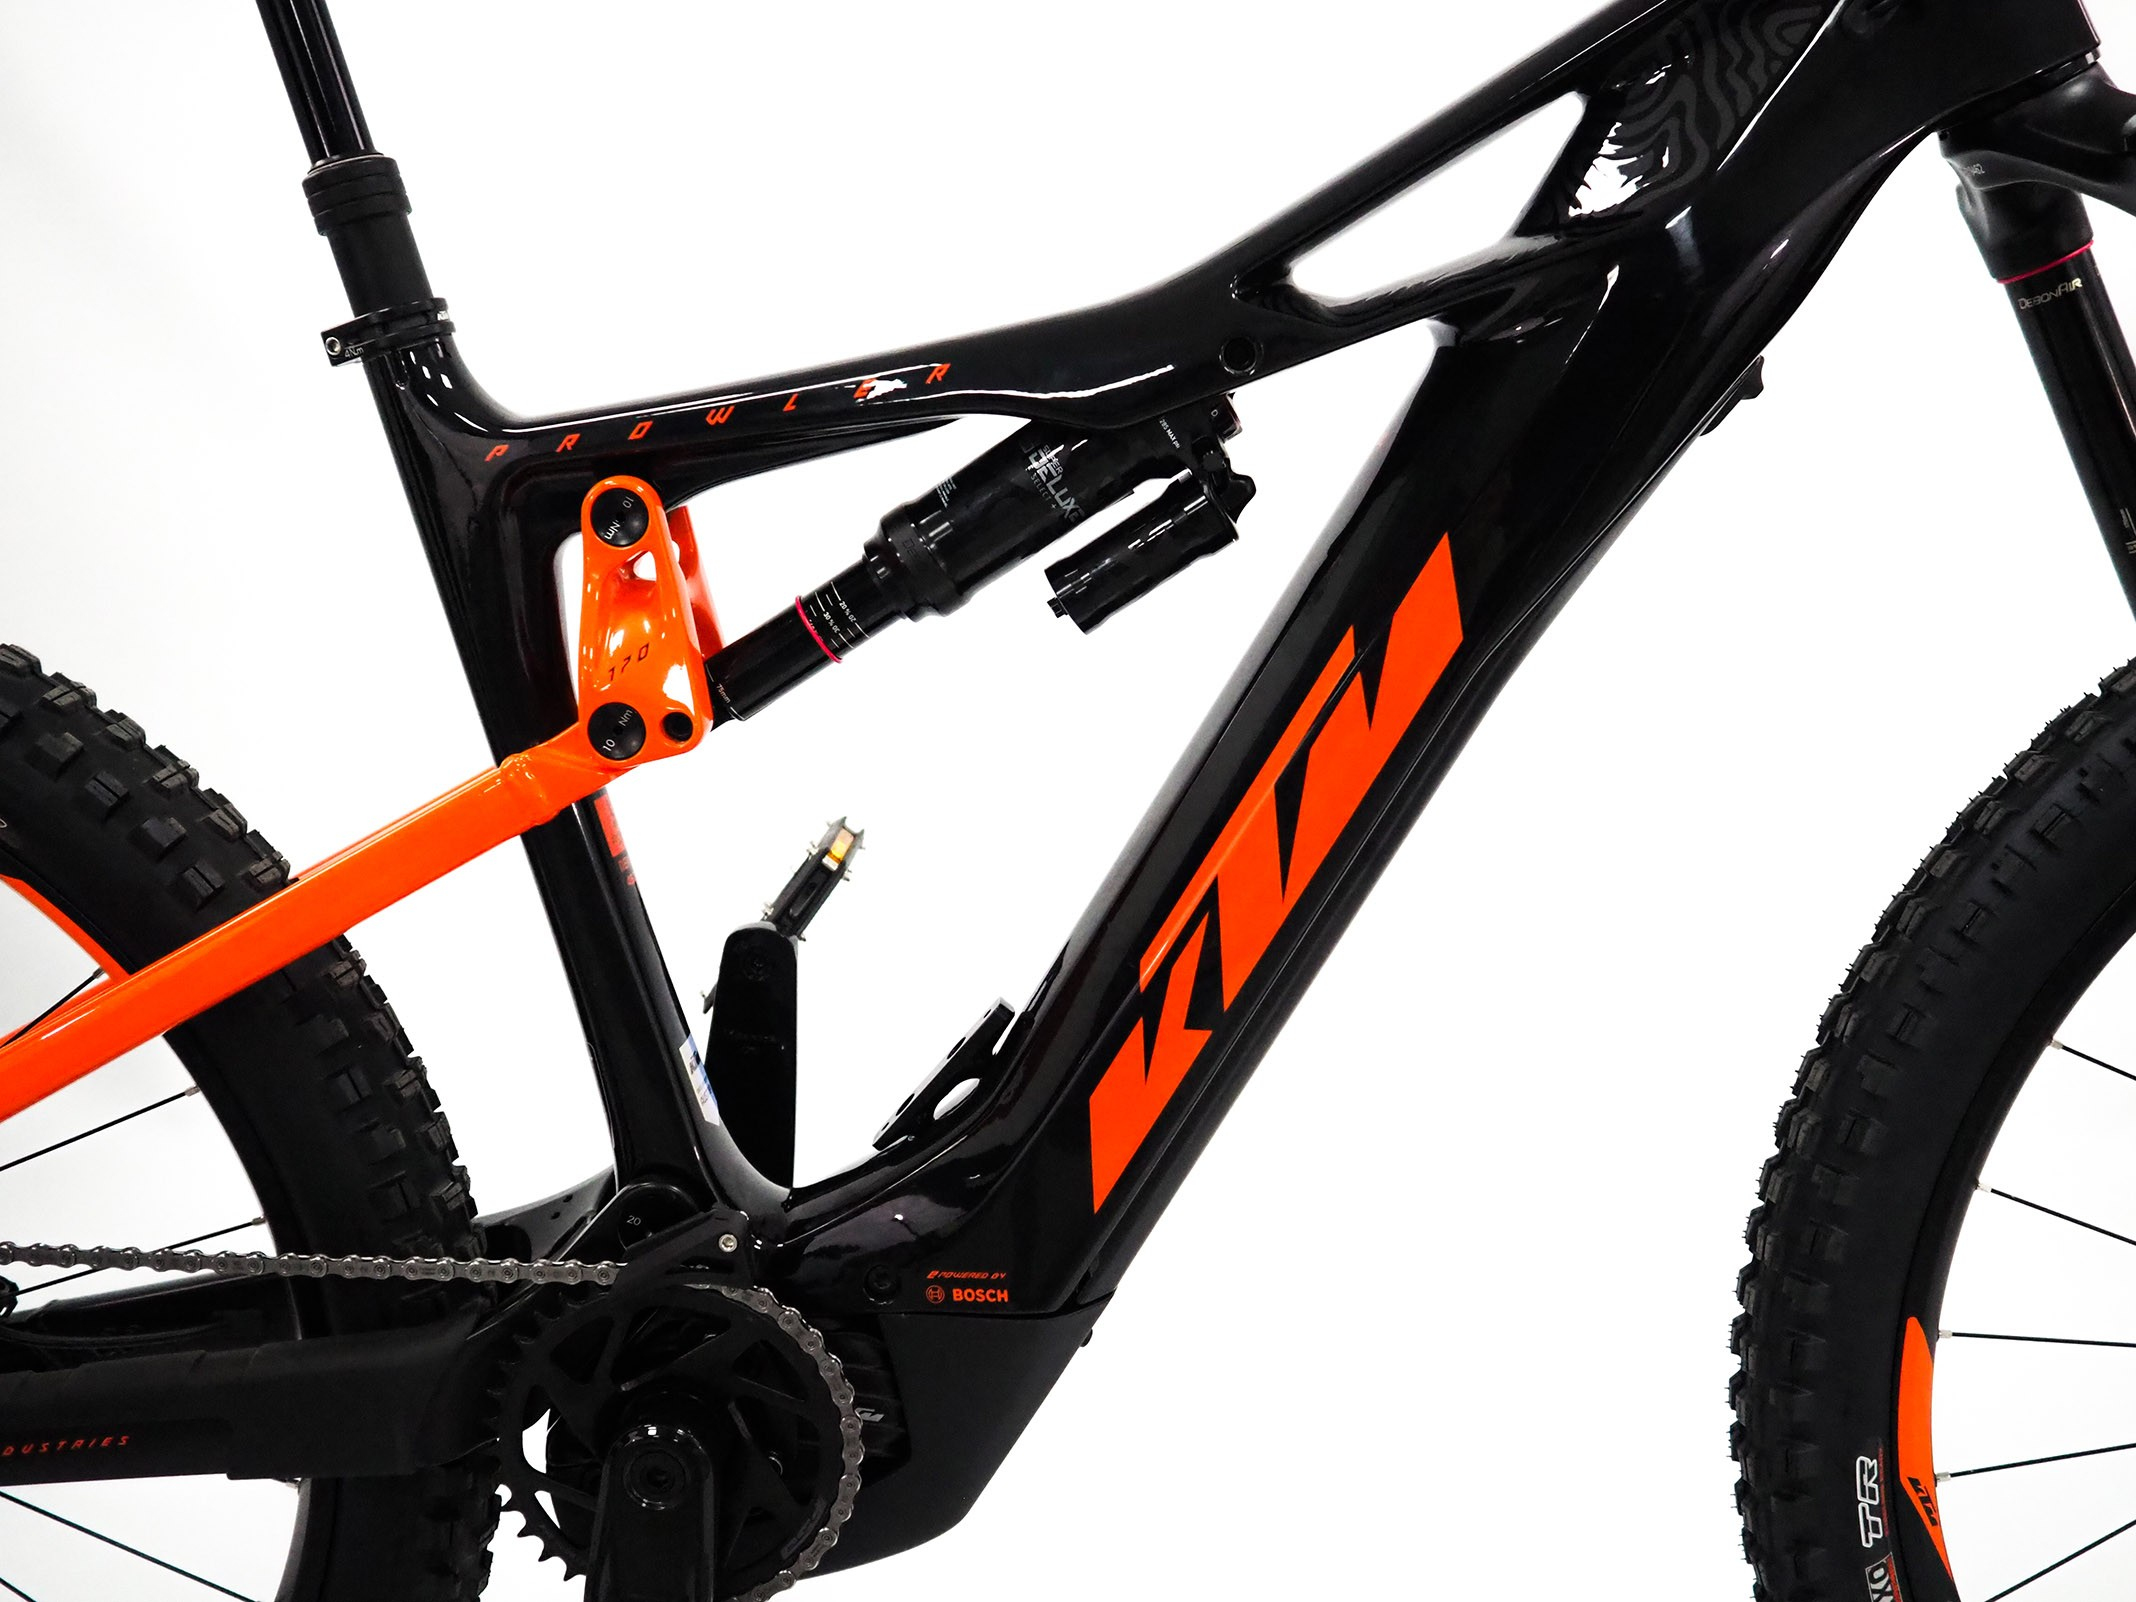 https://w8w5m3f8.stackpathcdn.com/22824-thickbox_extralarge/vtt-electrique-ktm-macina-prowler-master.jpg